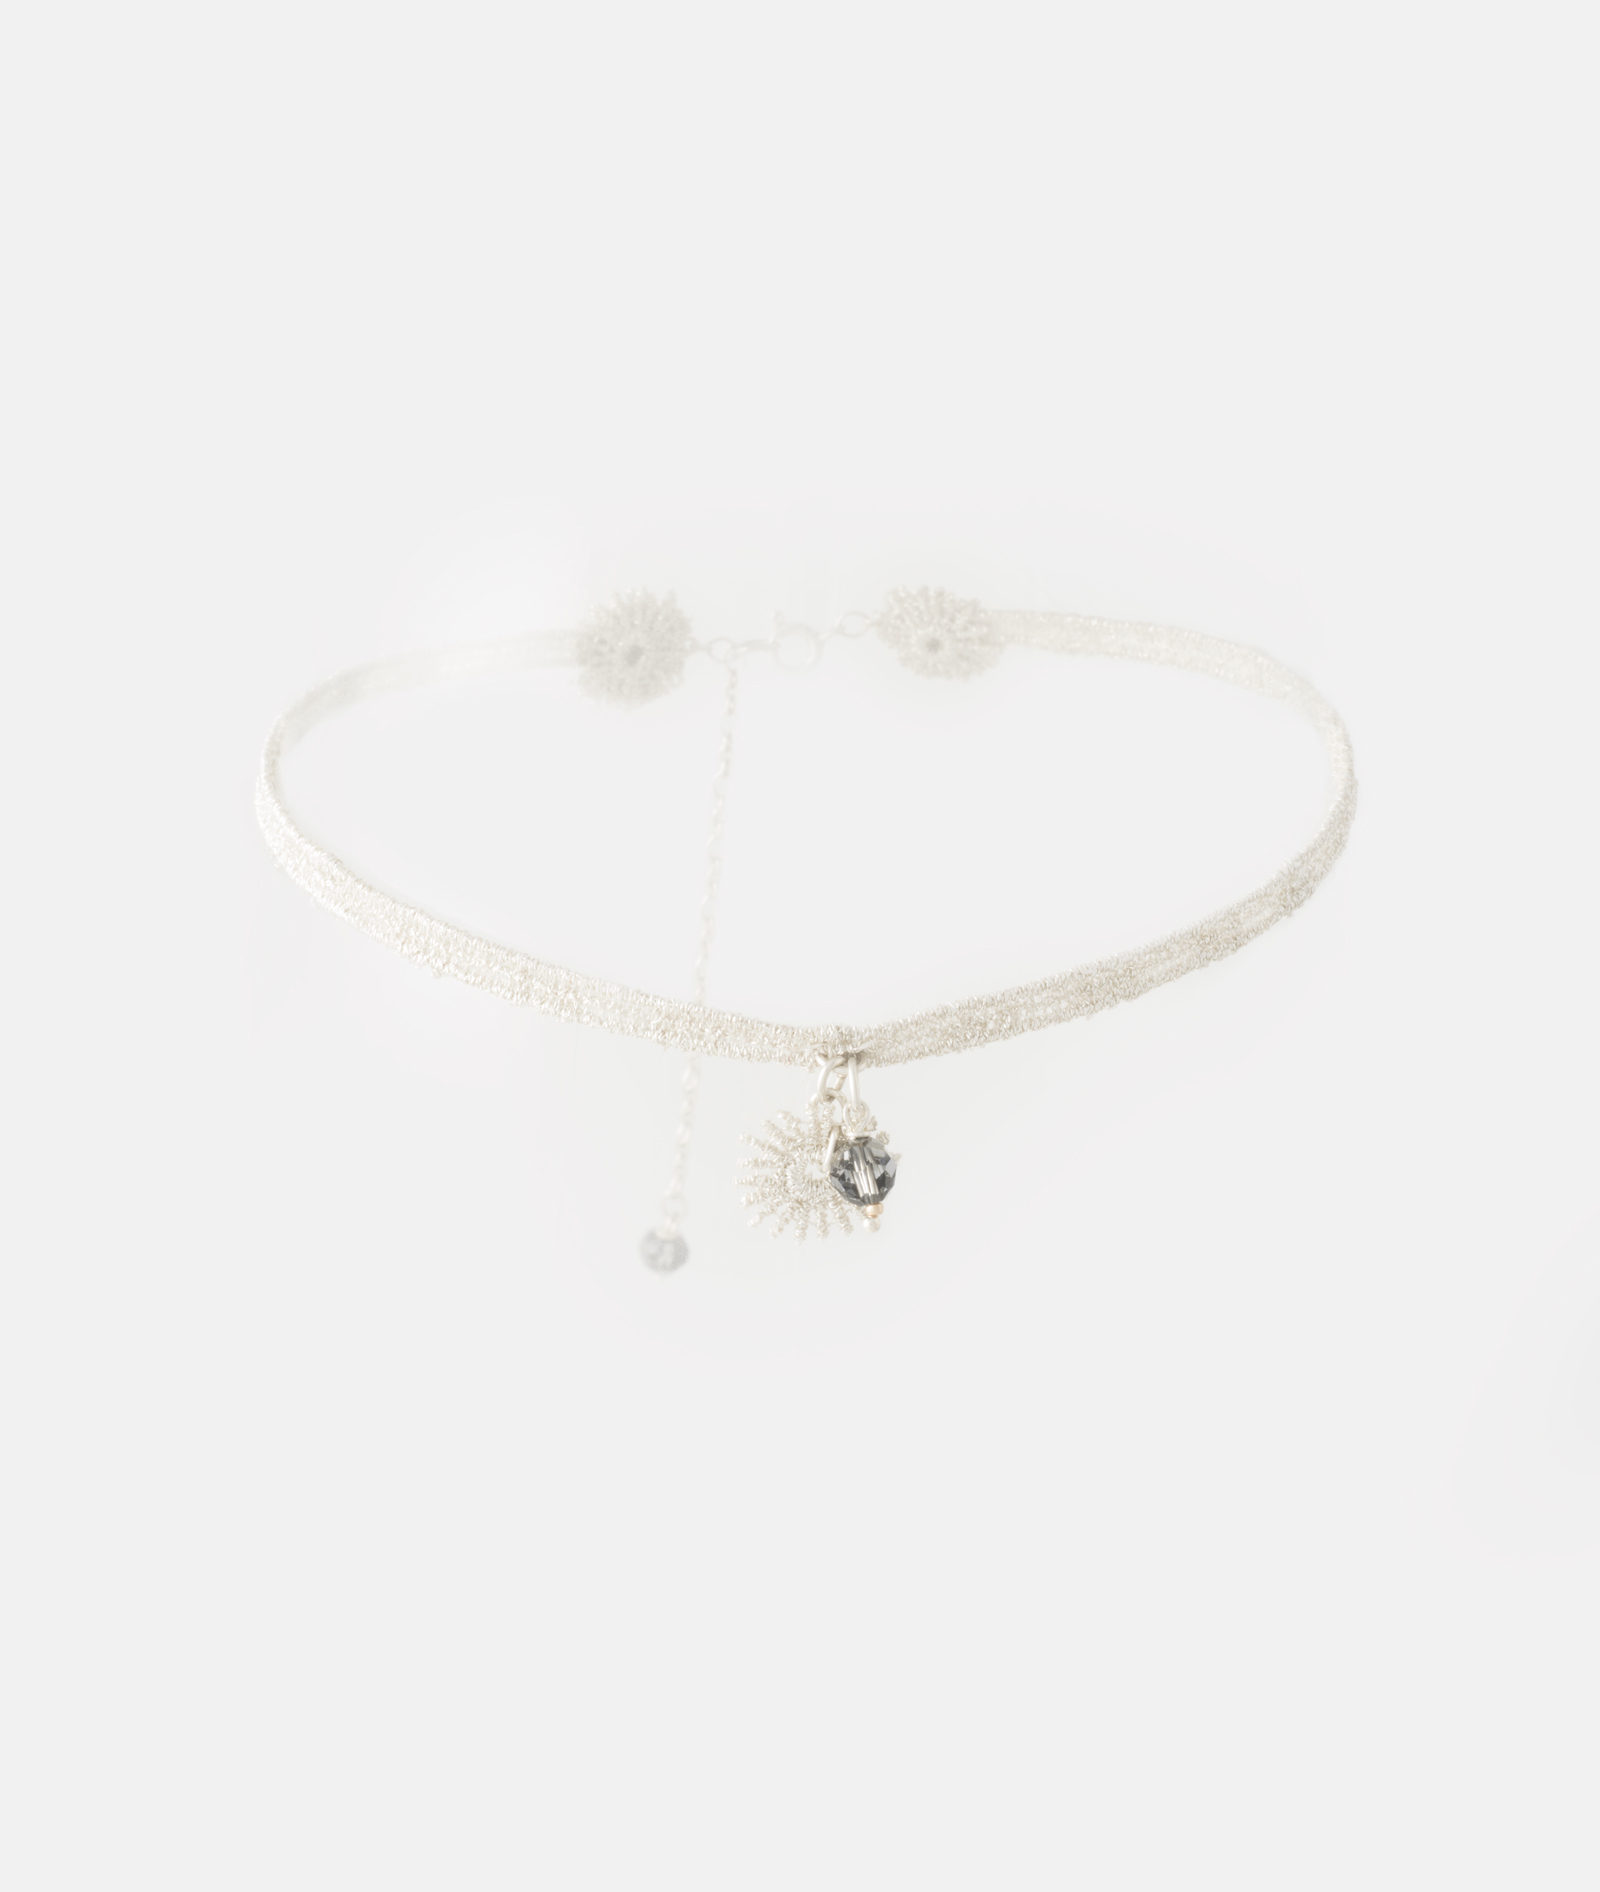 ASTRES SINOPE COLLIER